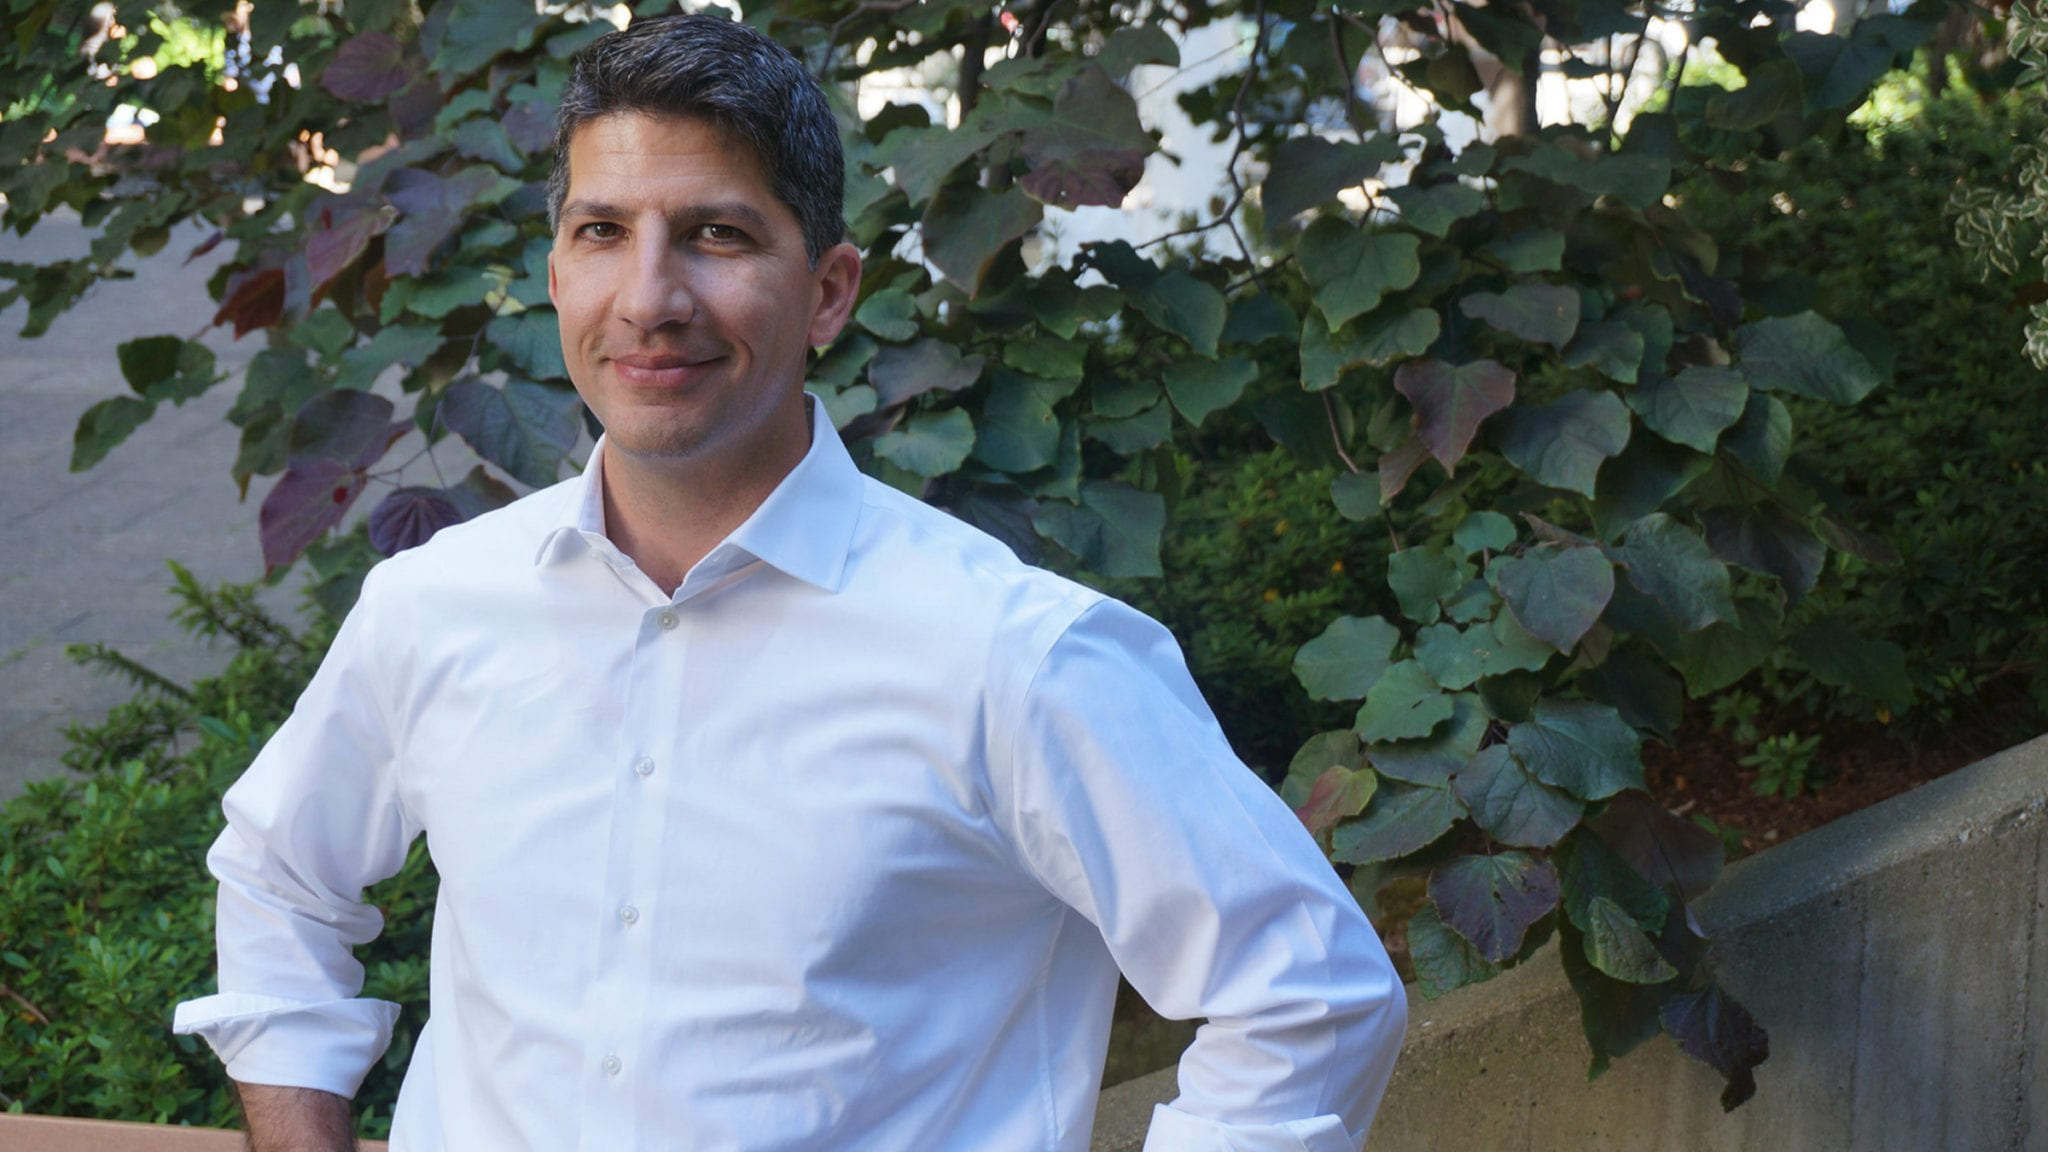 A small VC group expands its hunt for inspired biotech founders in need of seed cash